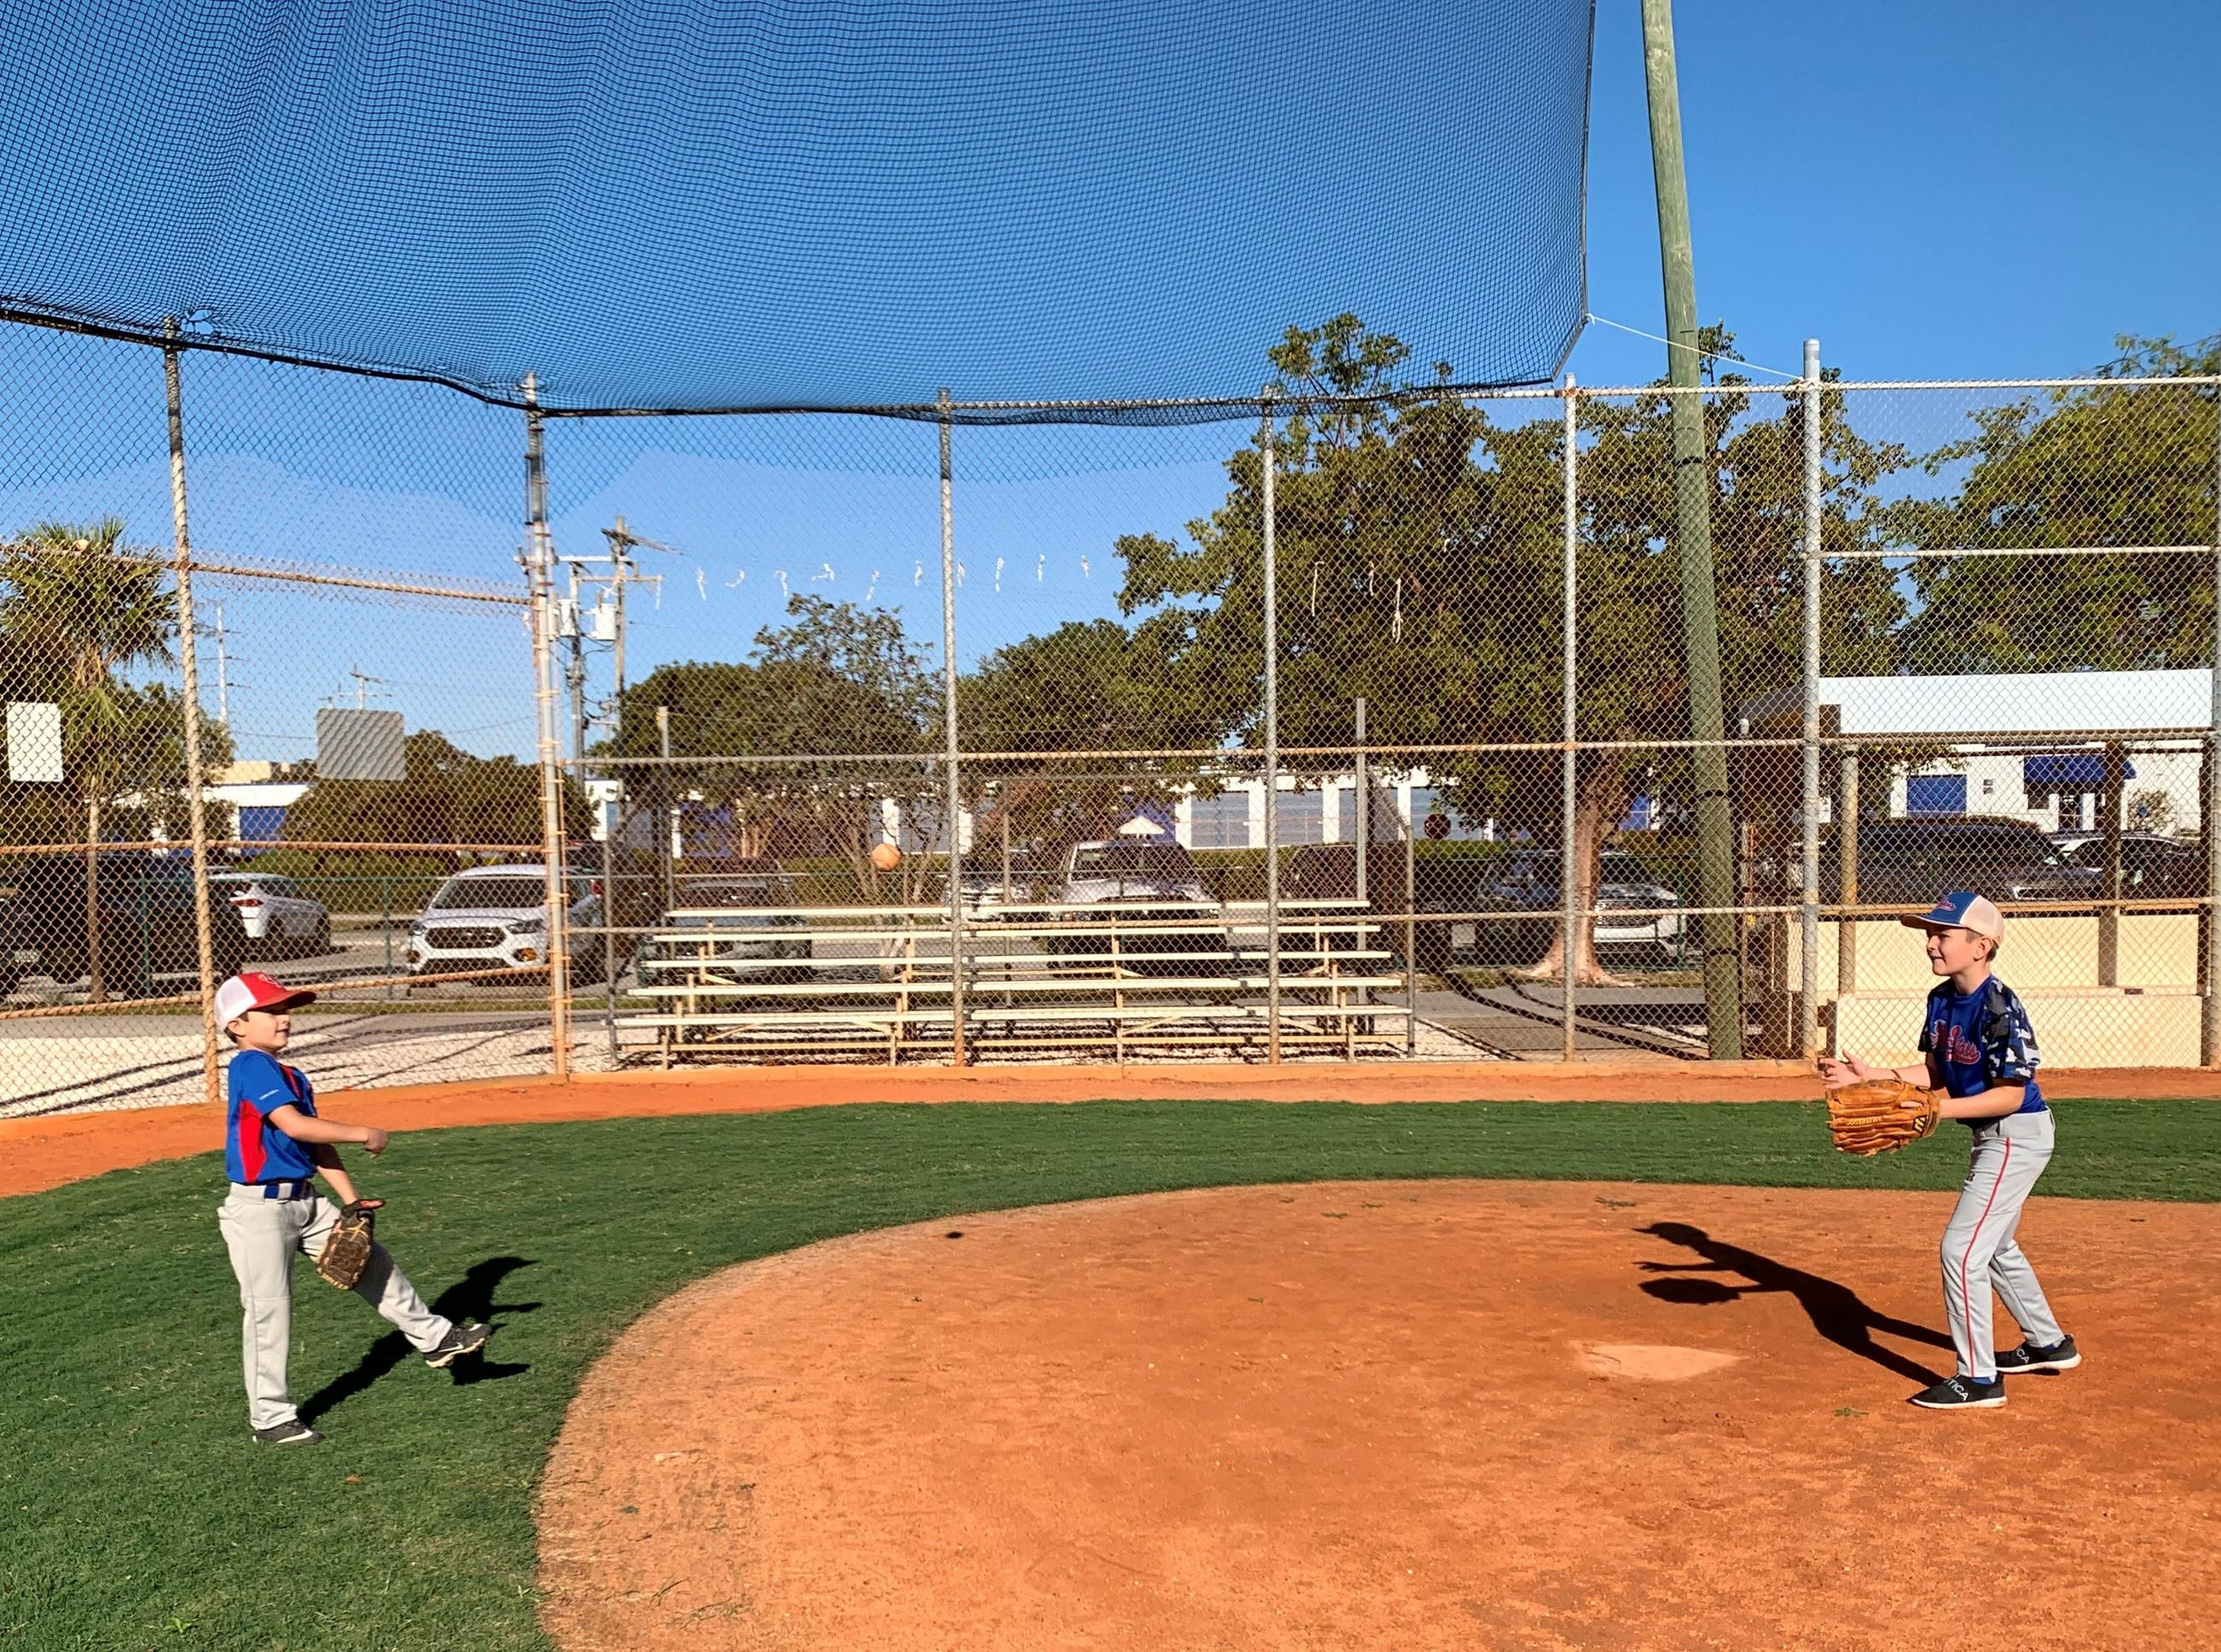 Two Upper Keys Little League players throw a ball to each other on the newly refurbished clay